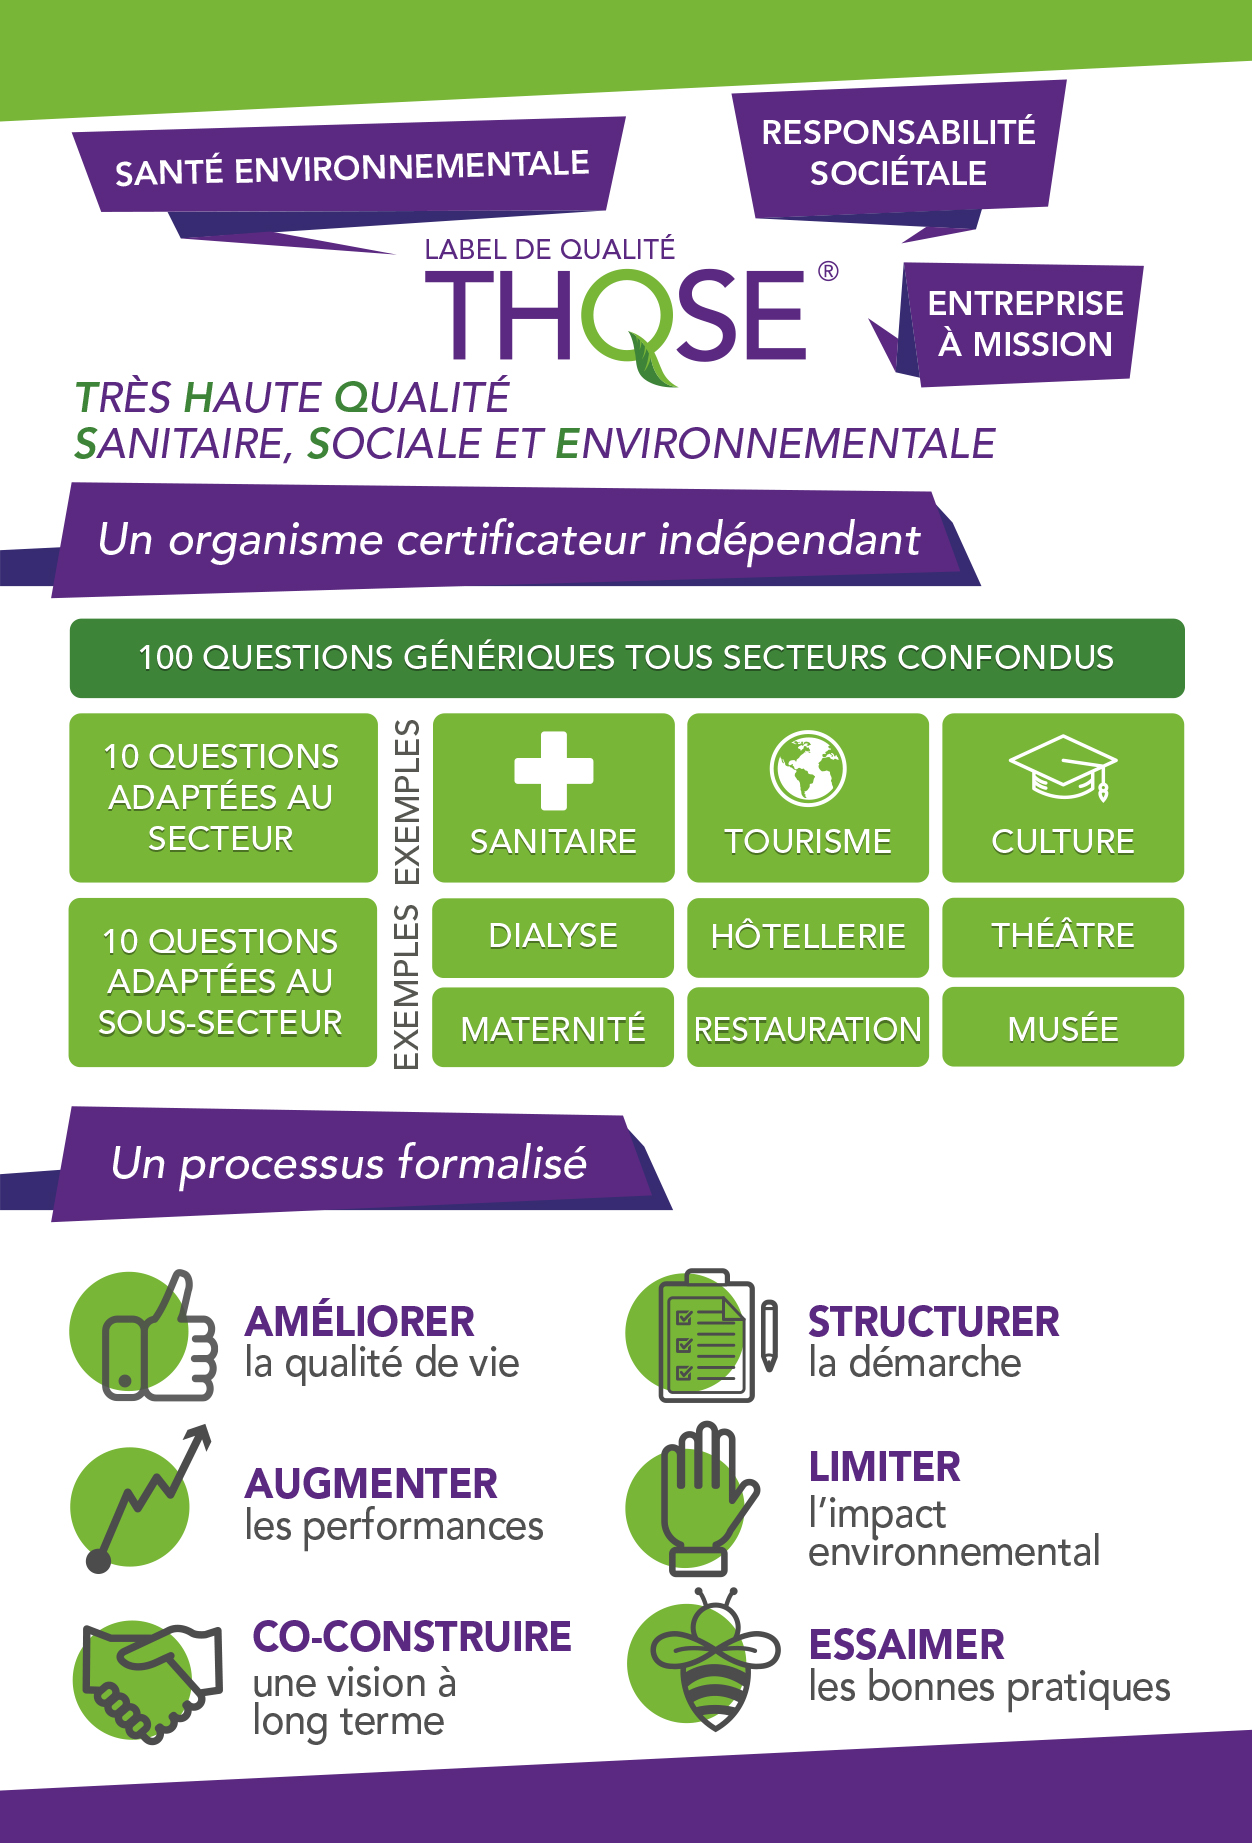 THQSE® : Label de qualité